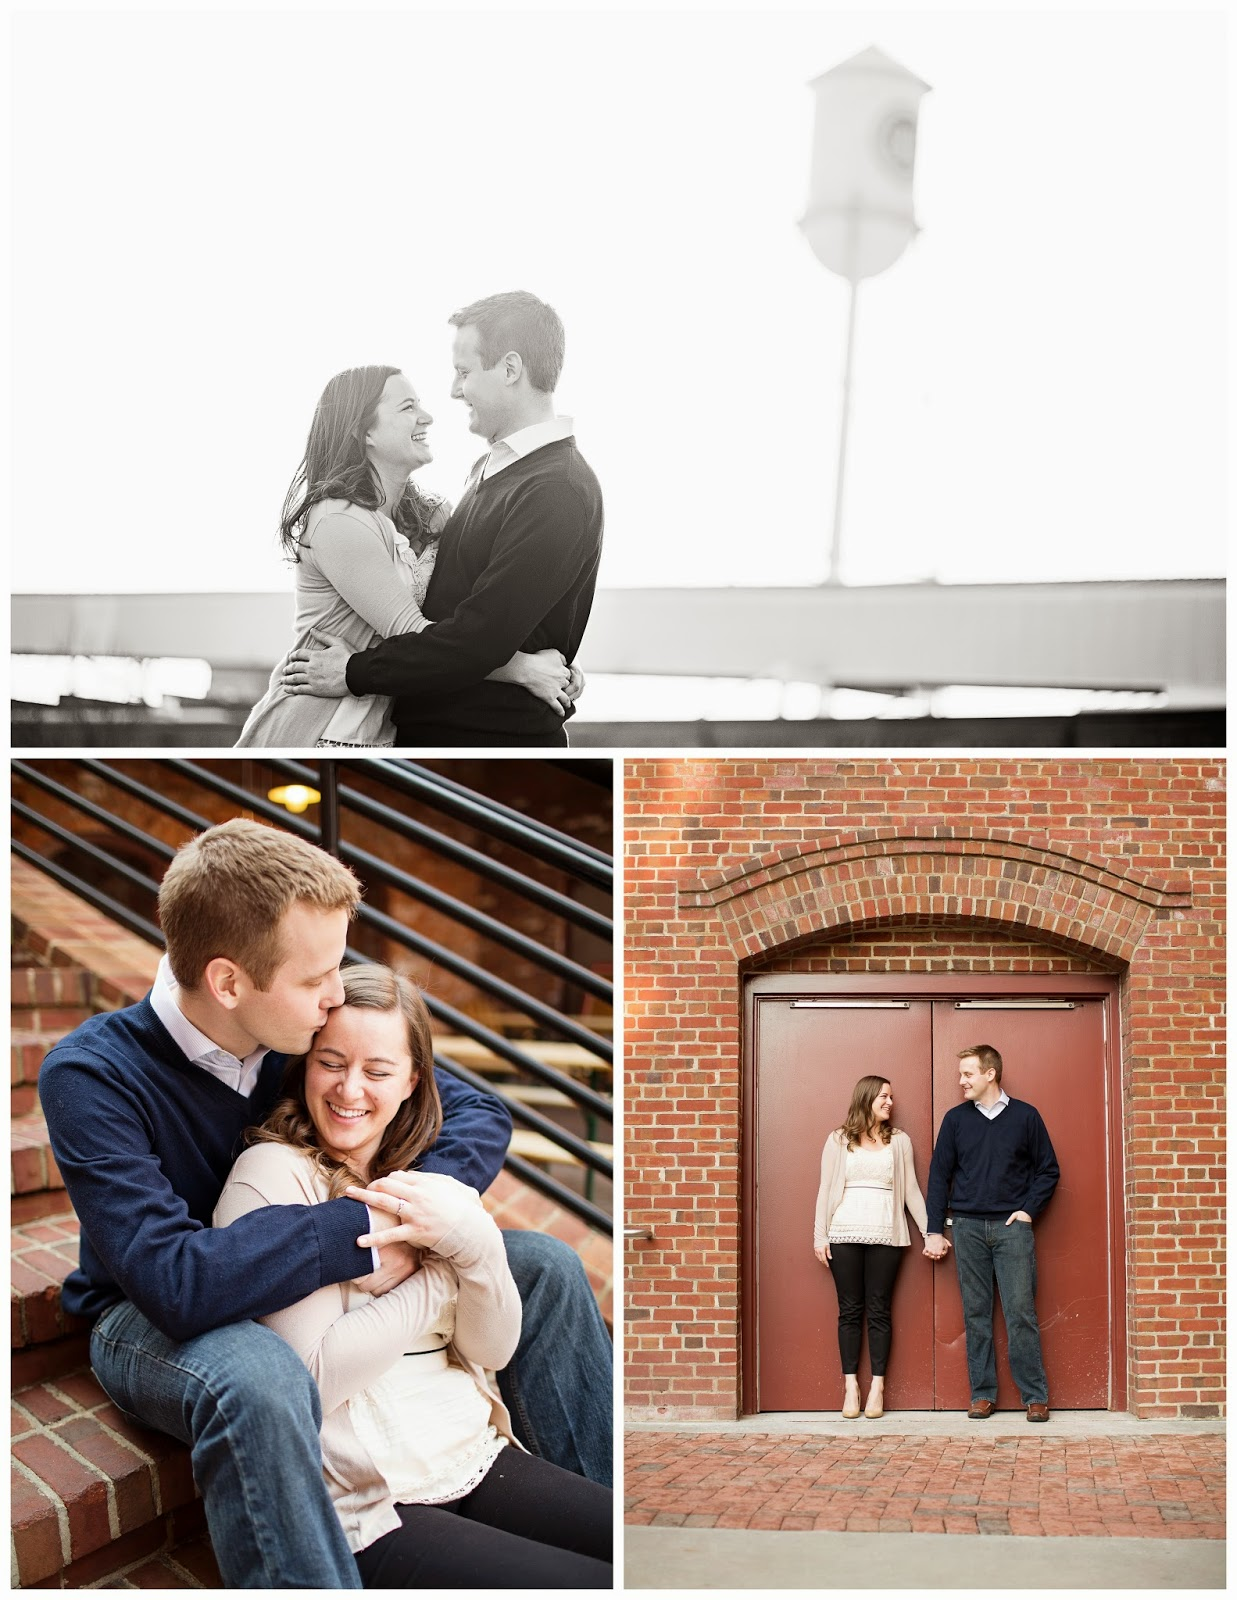 http://www.robynvandykephotography.com/blog/2014/03/engaged-kelly-andrew/